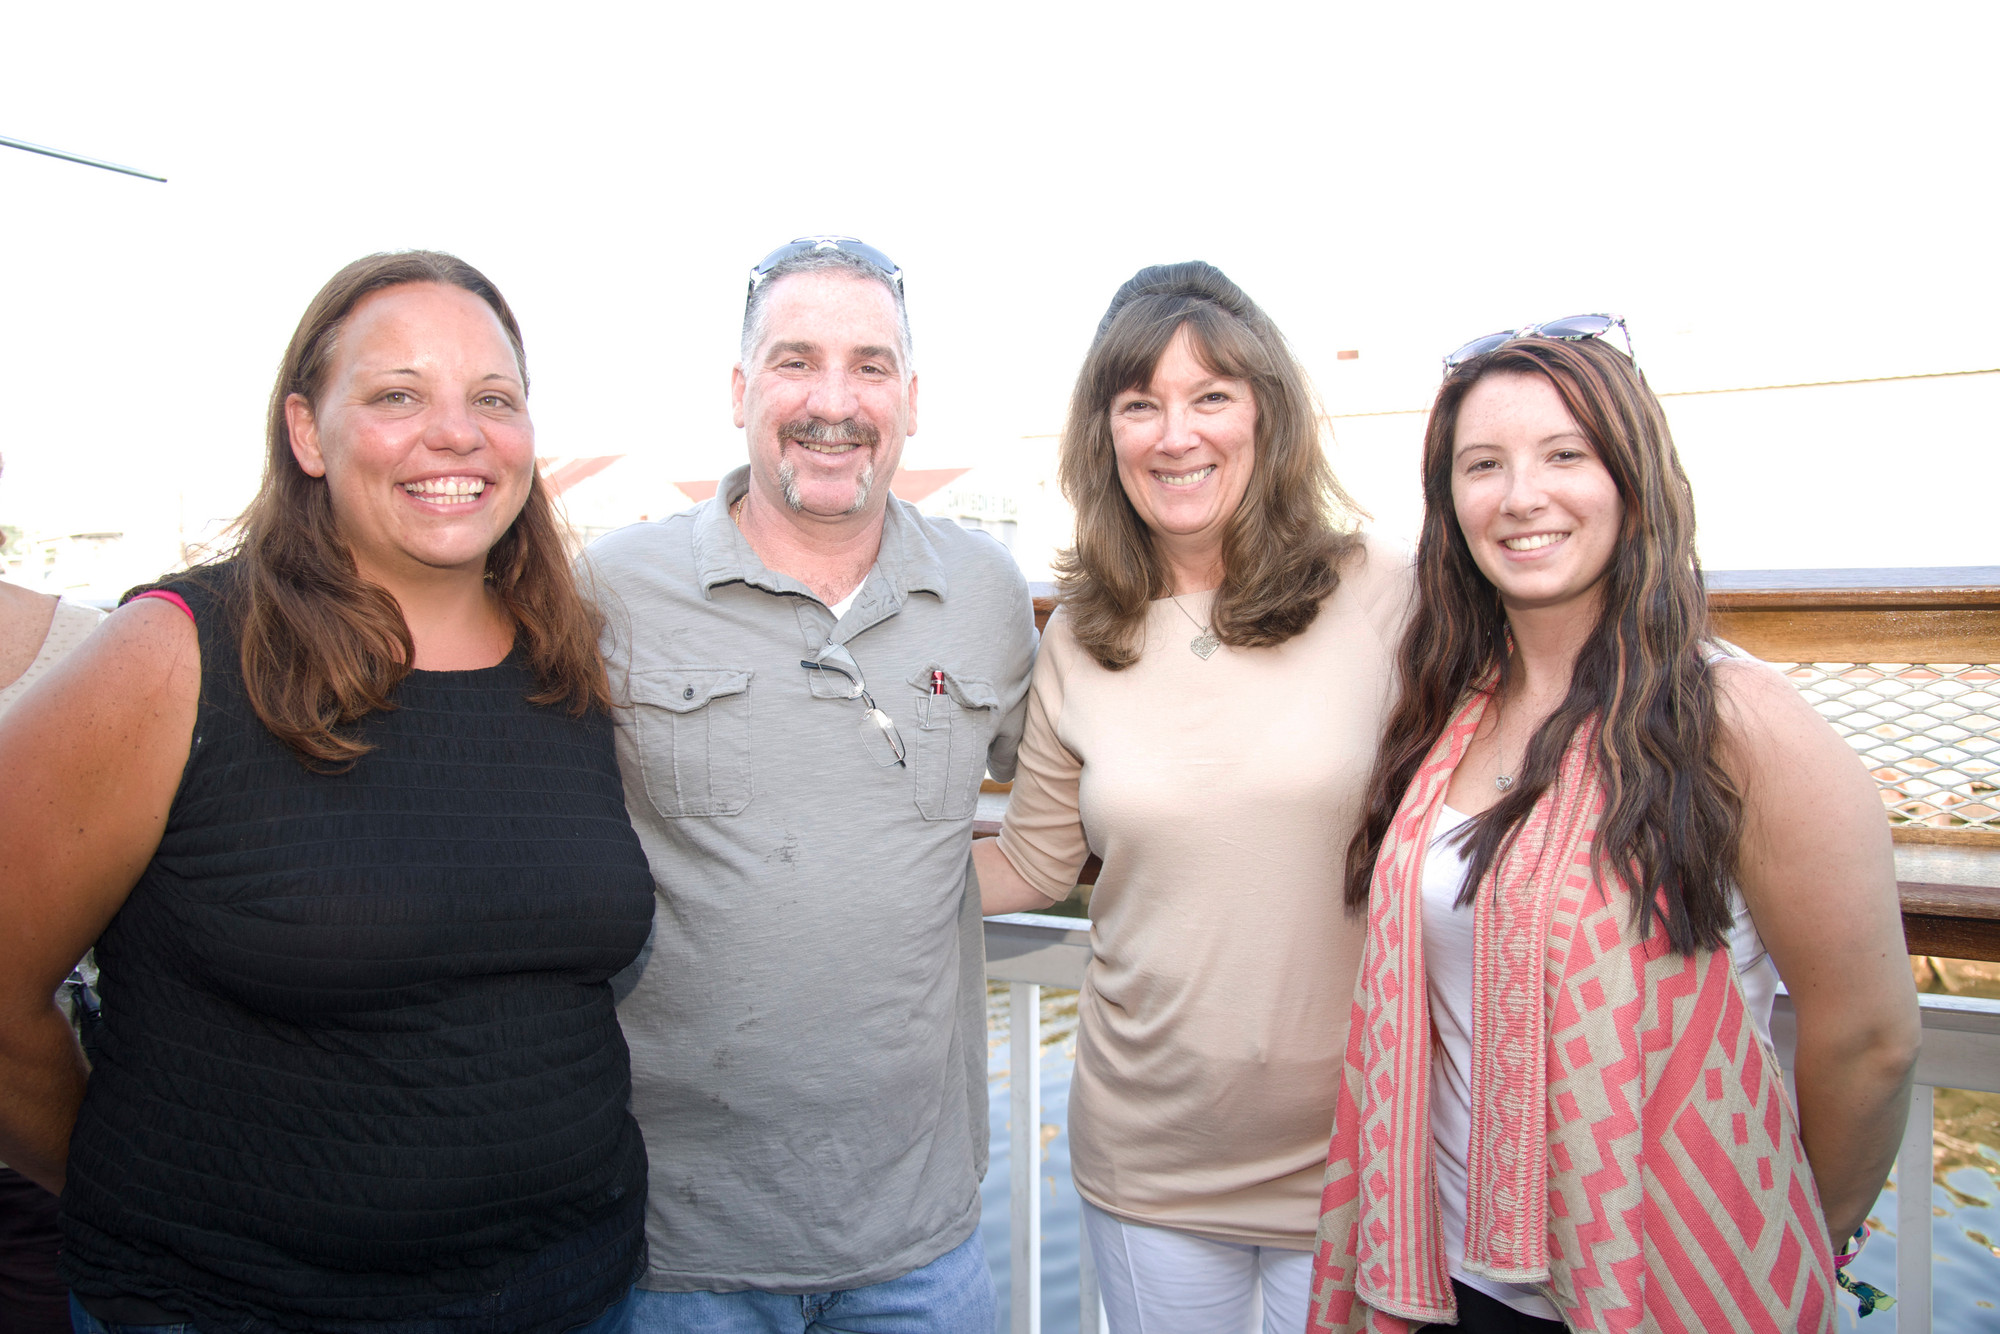 Dena Arnold,Ronald Roeill, Tammy Pacheco, Kimm Pacheco at the fishery in ER